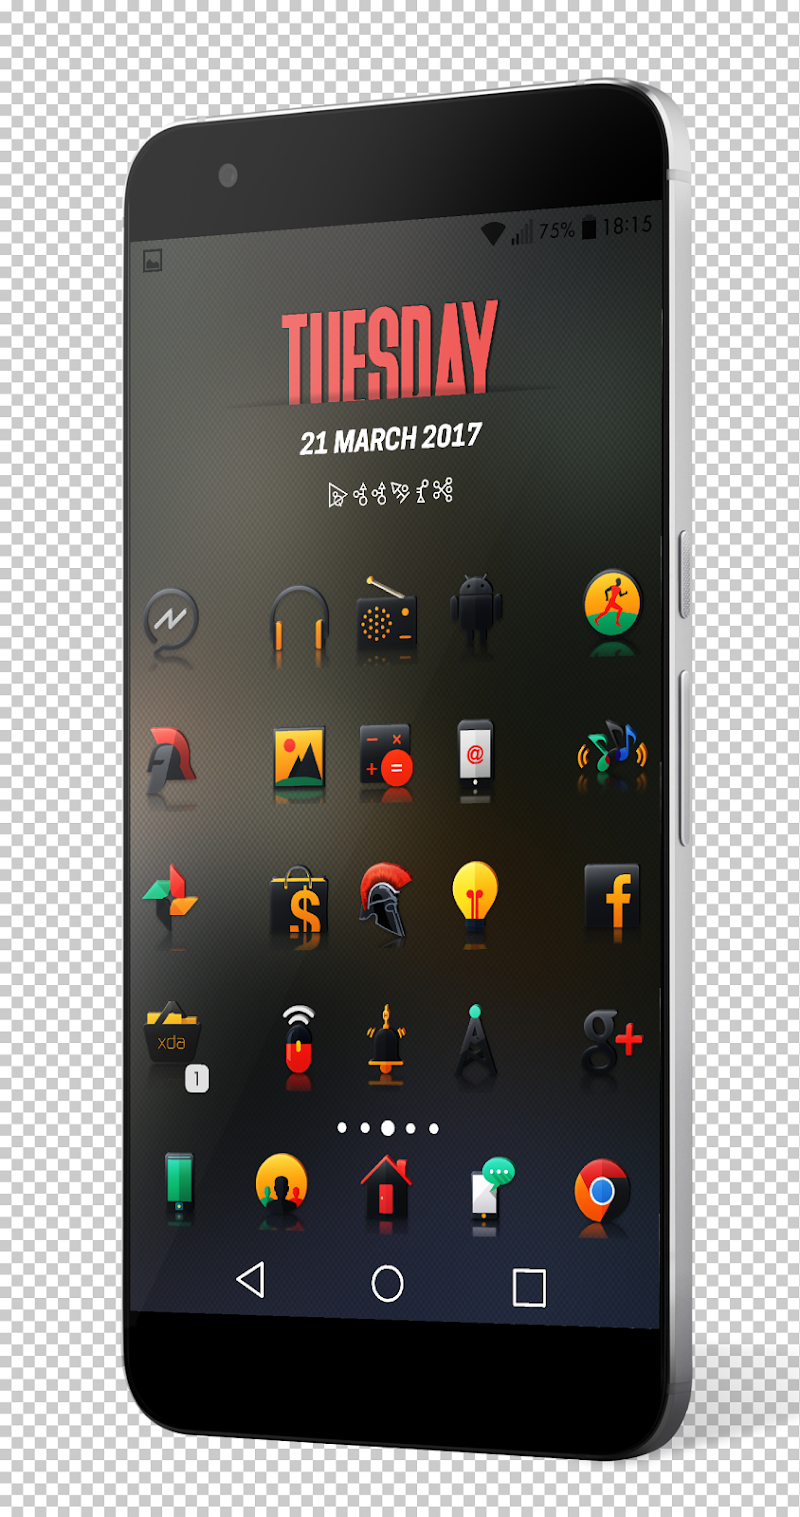 Darko 2 - Icon Pack Screenshot 5